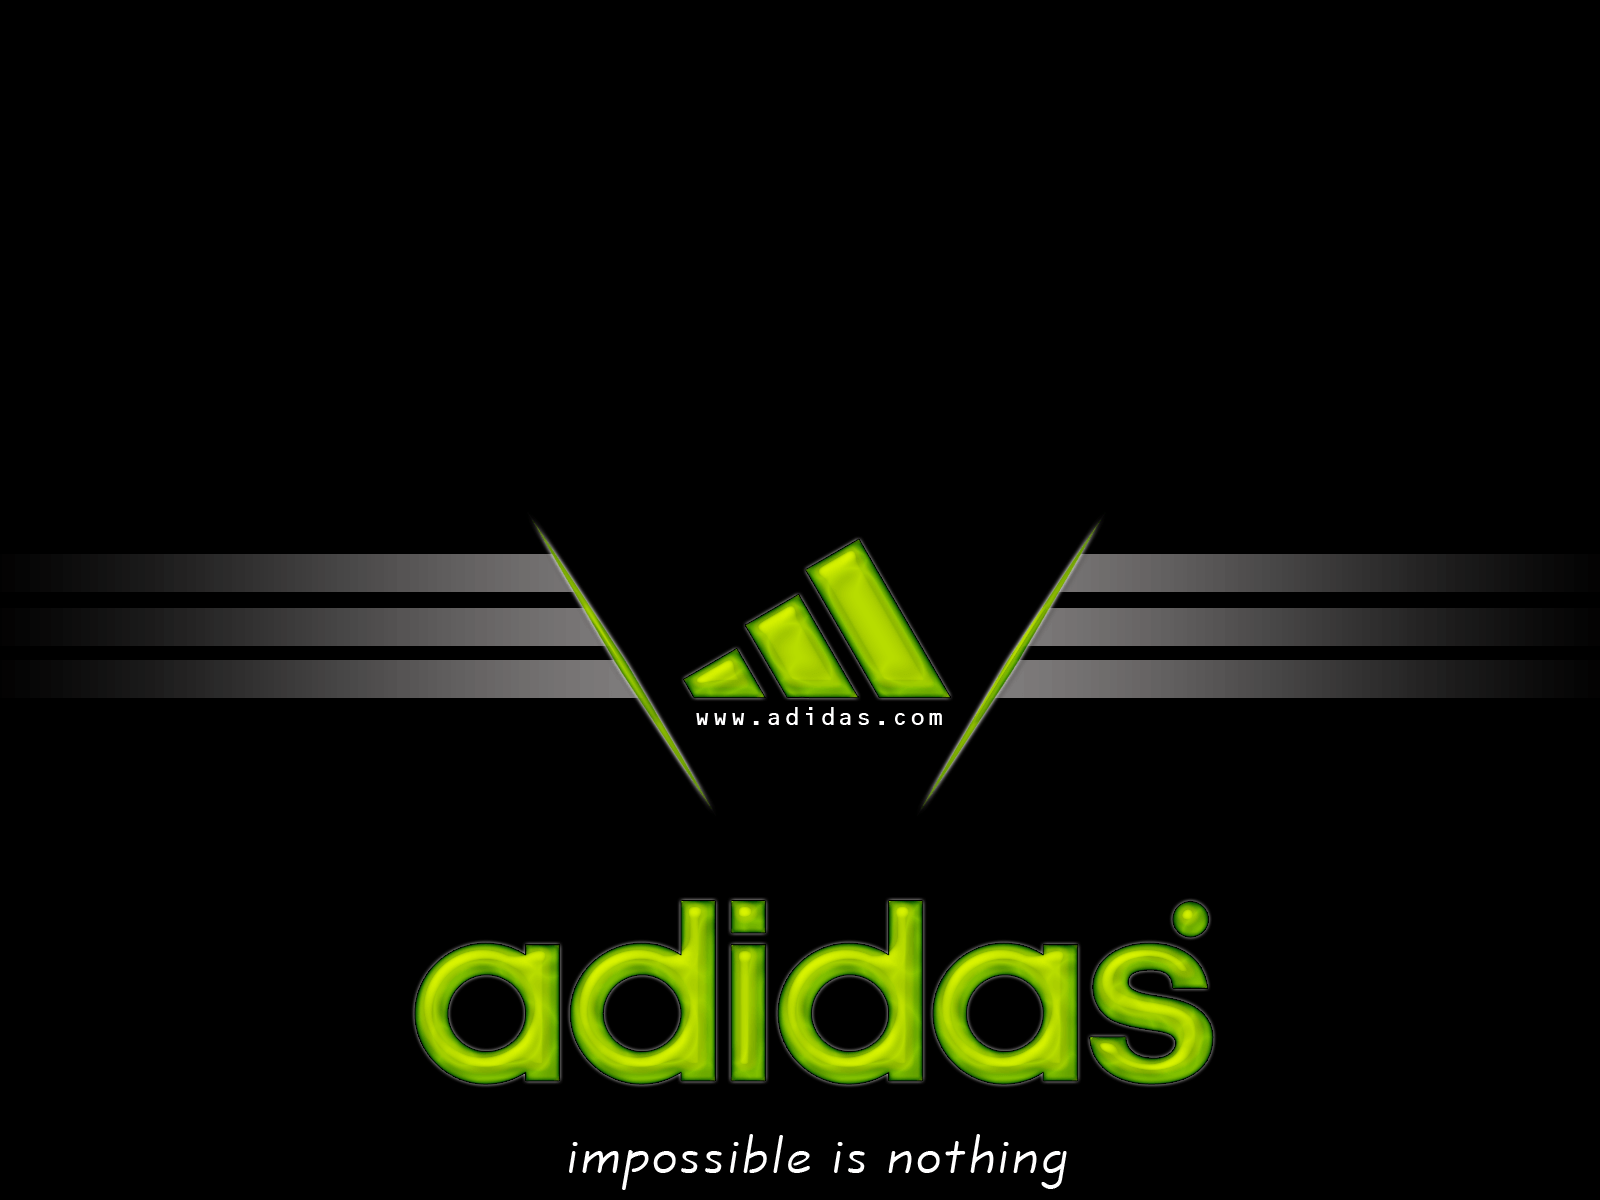 Wallpapers Logo Adidas Wallpaper Cave